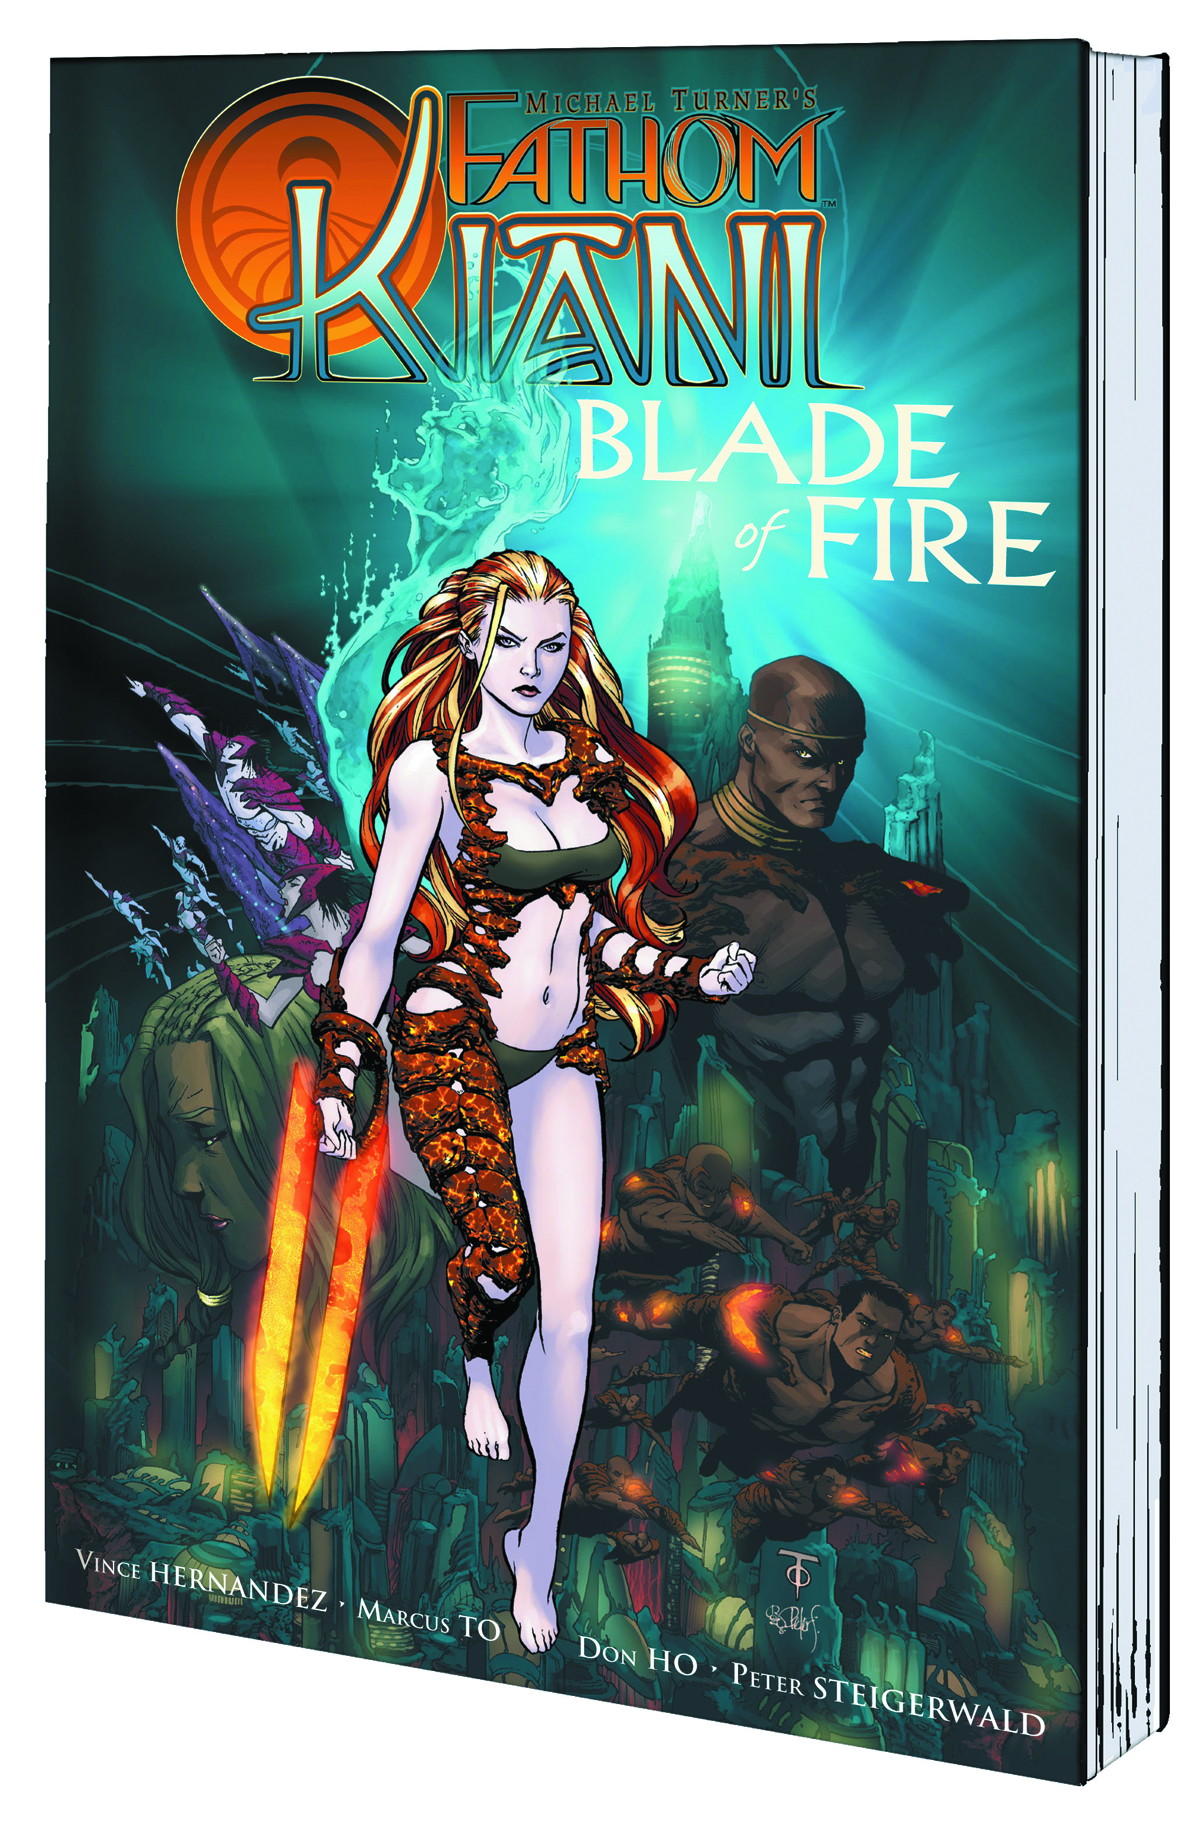 FATHOM KIANI TP VOL 01 BLADE OF FIRE